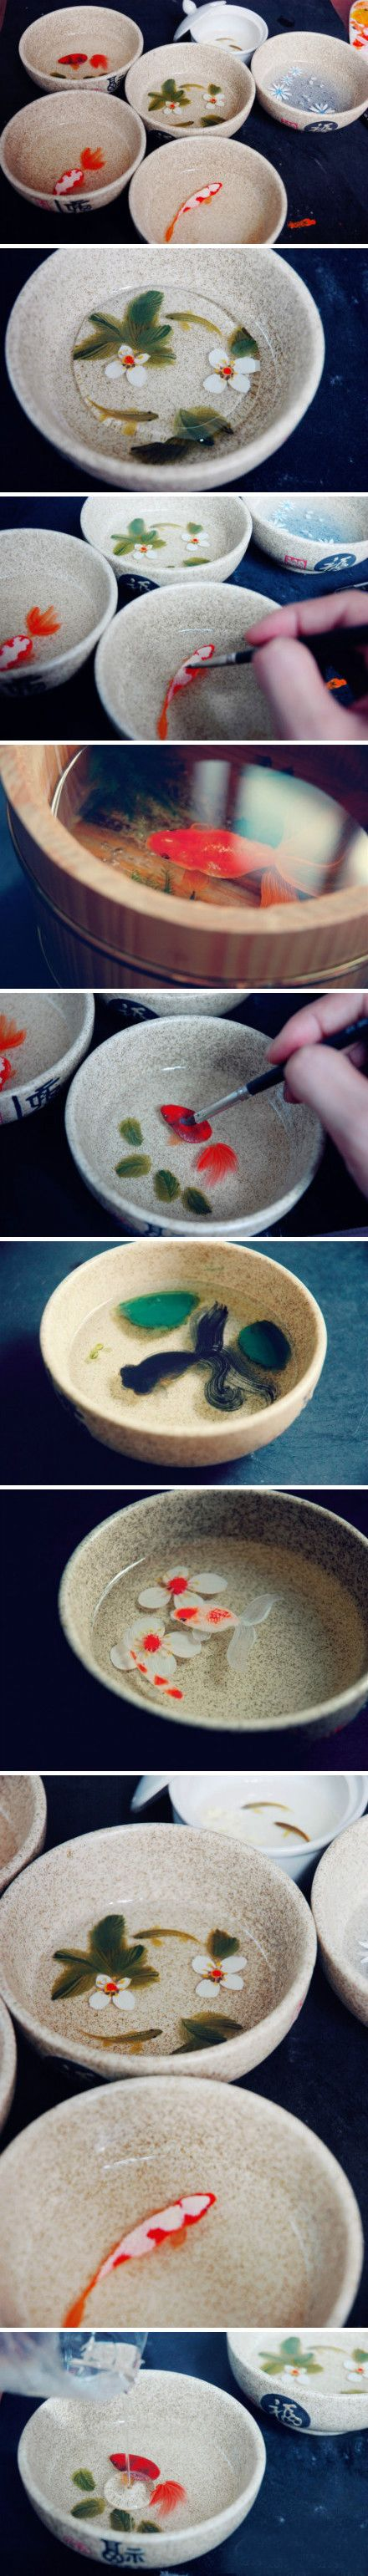 Such a cool idea, I can see where an acrylic paint would be used to pain the bottom of the bowl...what type of glue would be used to coat the design to make it seem like has water in it?